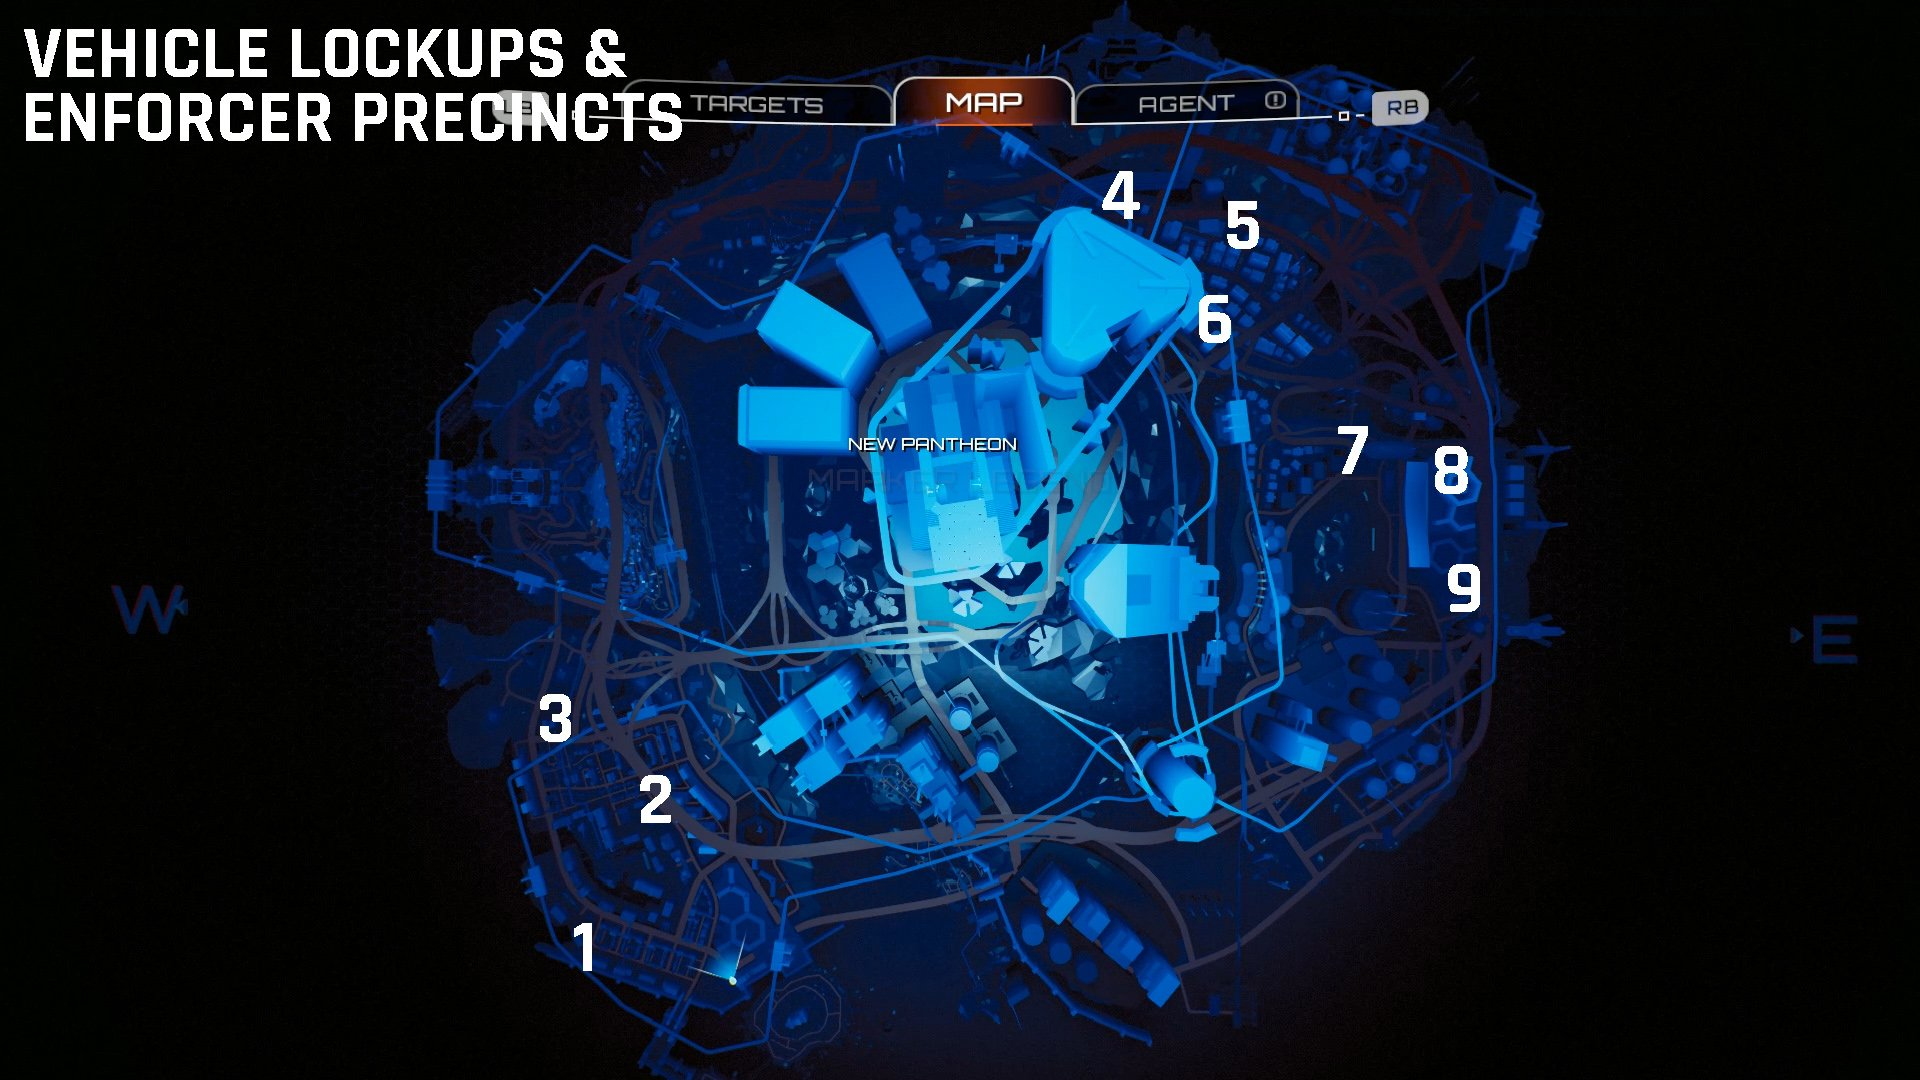 Crackdown 3 Vehicle Lockups and Enforcer Precincts